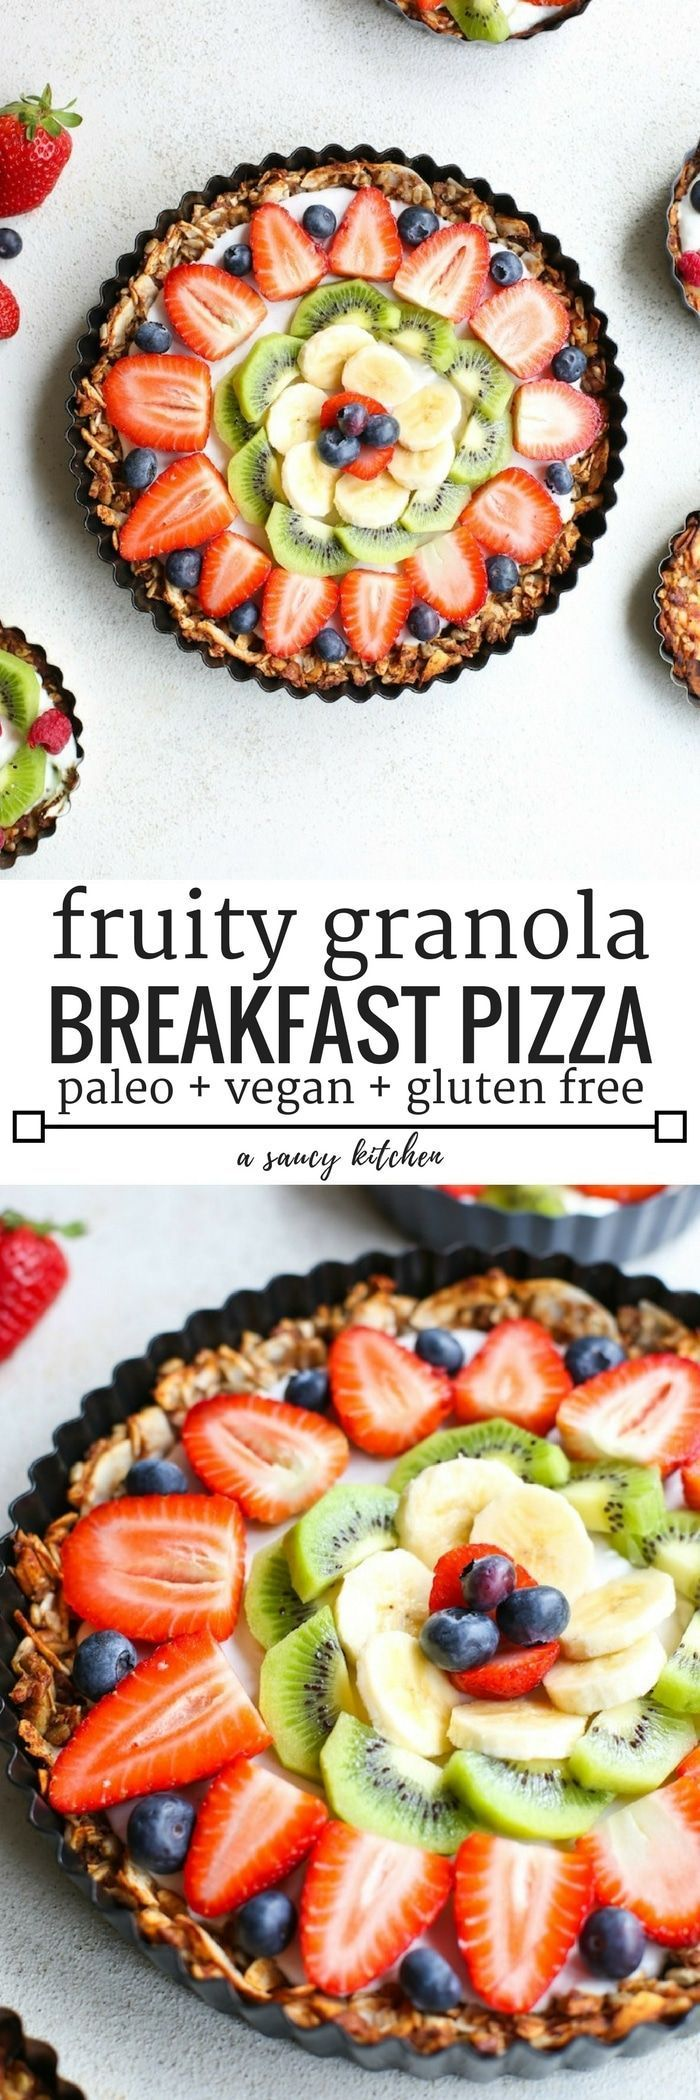 Fruity Granola Breakfast Pizza - a grain free nut & coconut crust that's naturally sweetened with a coconut cream top and fresh fruit | Paleo & Vegan